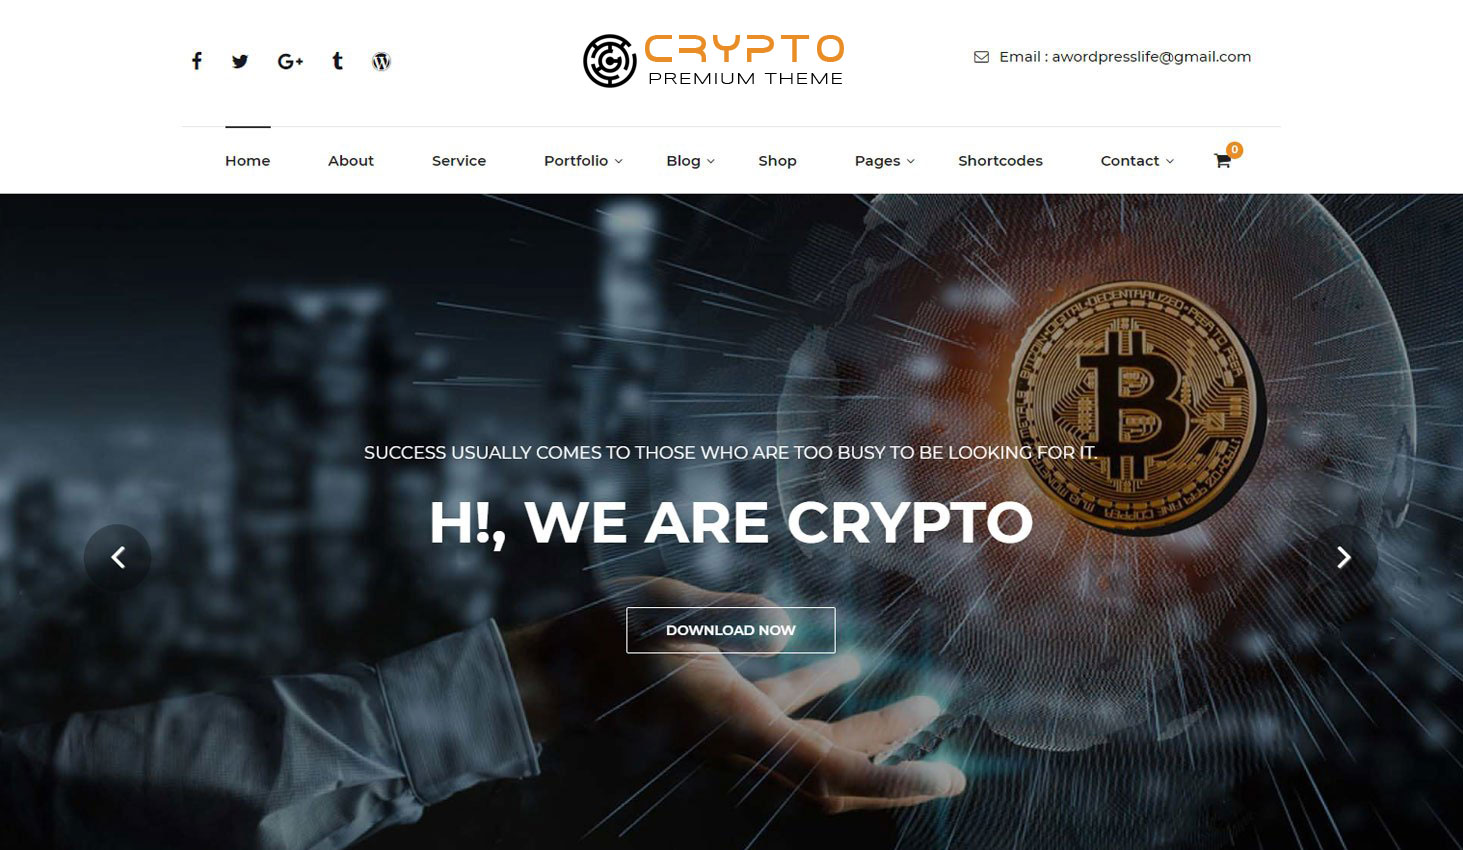 Crypto-Premium-WordPress-Theme-For-Cryptocurrency-Business-and-Blog-Websites-A-WP-Life-Homepage-Template